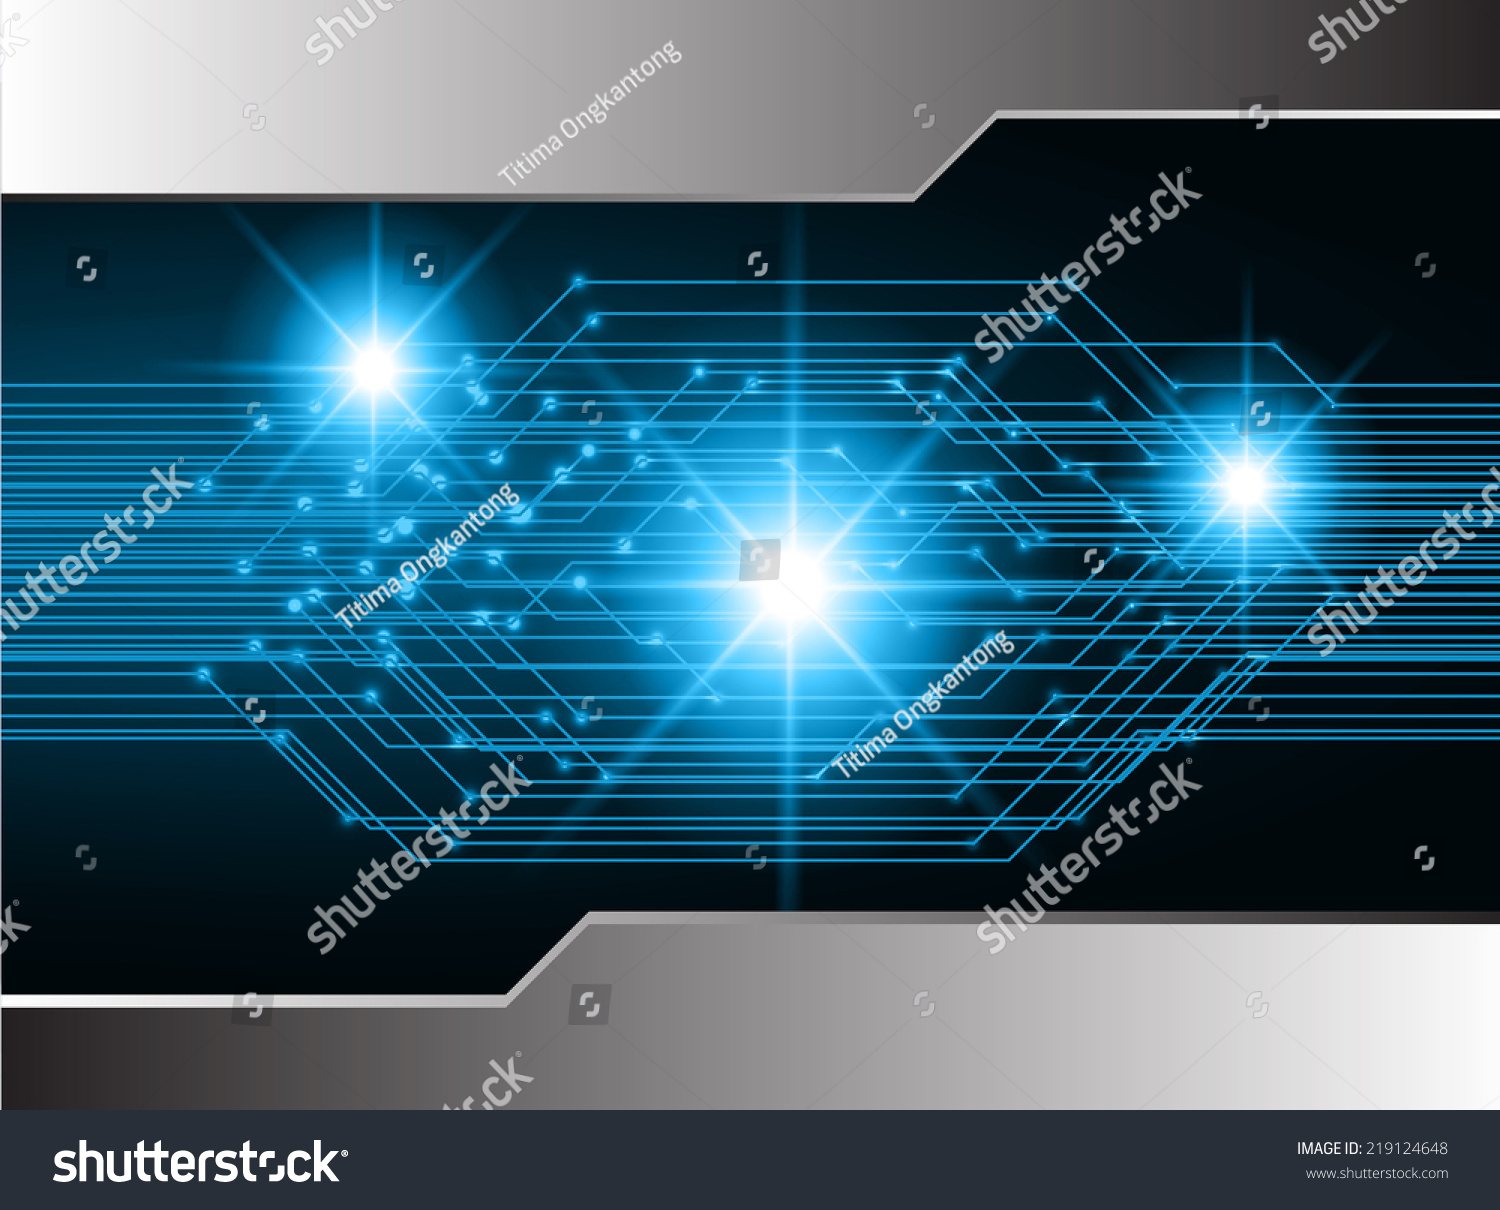 Blue Light Abstract Technology Background For Computer Graphic Circuit Board Design Grunge Stock Photos Website And Internet Ez Canvas